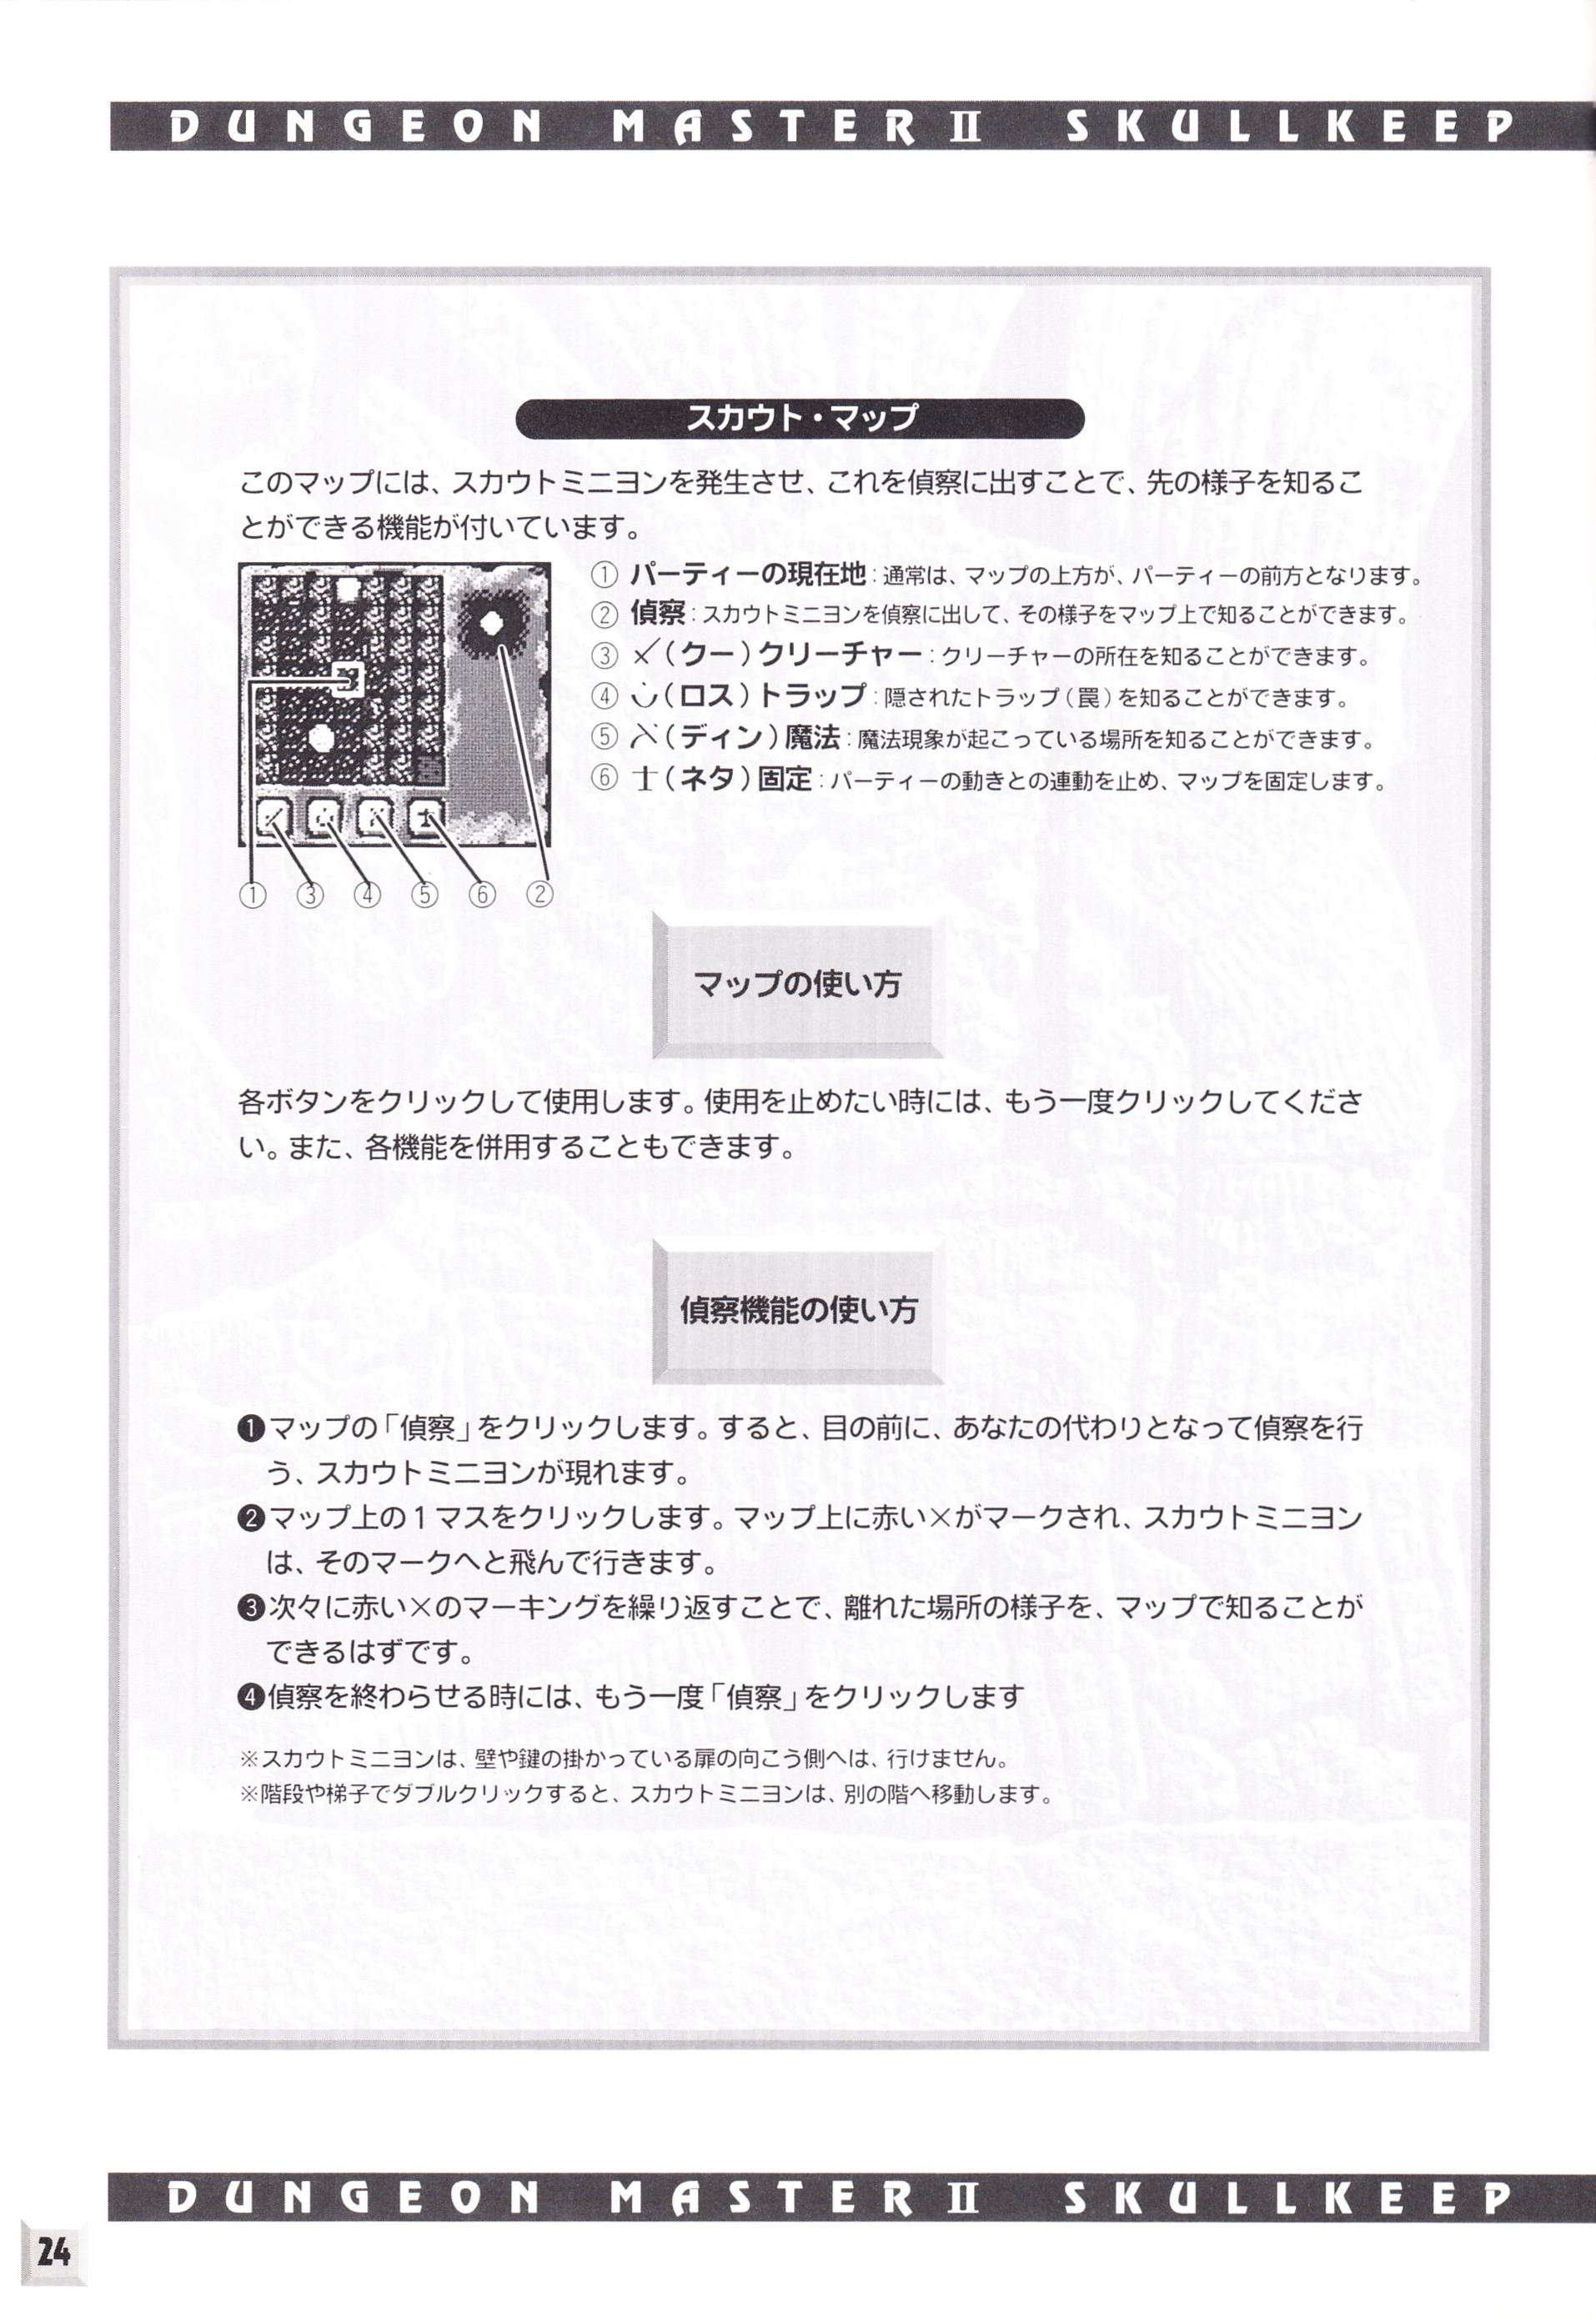 Game - Dungeon Master II - JP - FM Towns - An Operation Manual - Page 026 - Scan